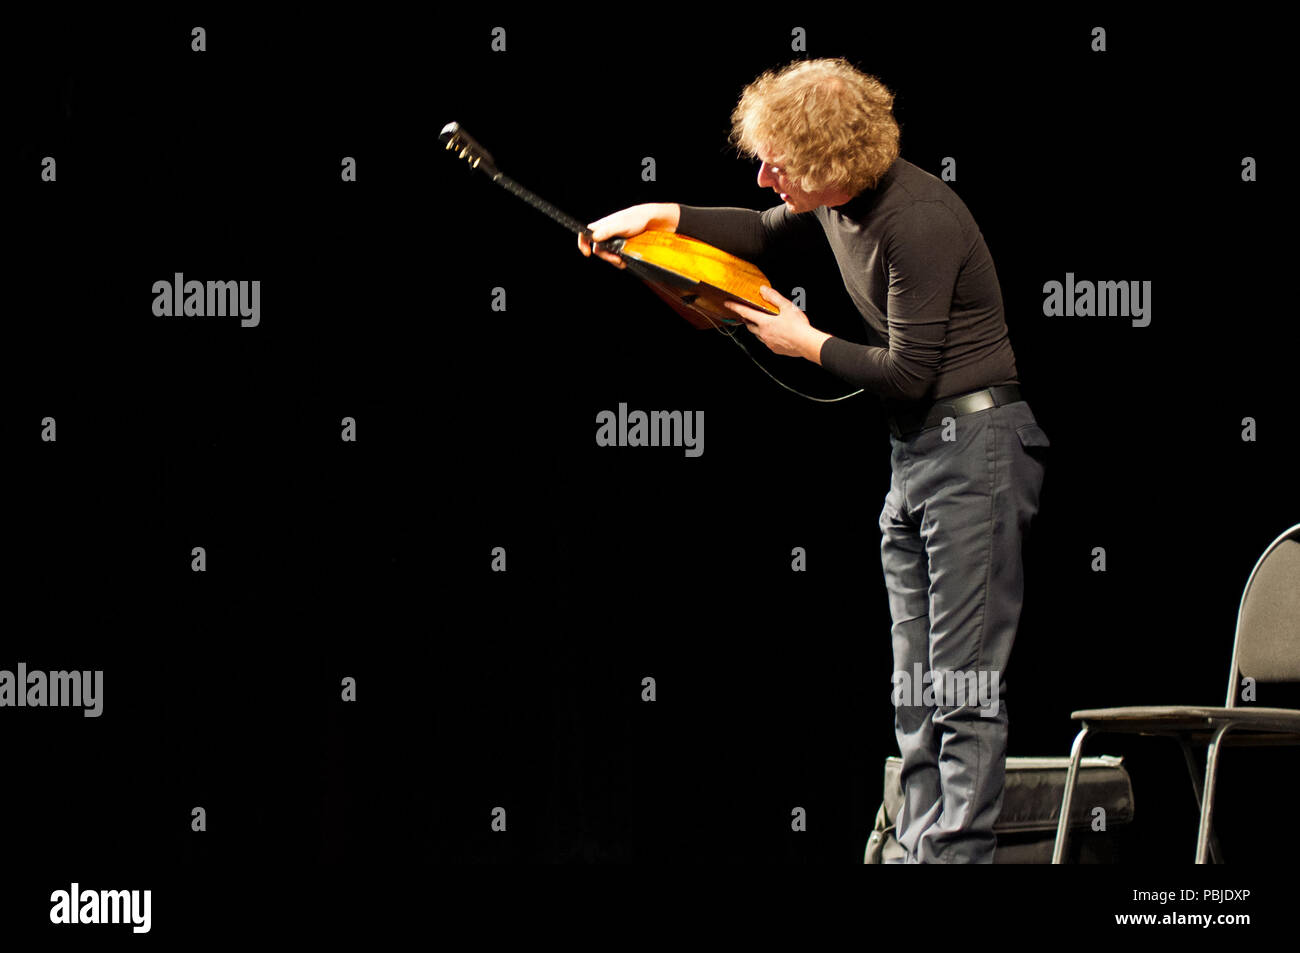 MOSCOW, RUSSIA - NOVEMBER 10, 2011: Virtuoso-balalaika player Alexei Arkhipovsky plays at the concert. - Stock Image